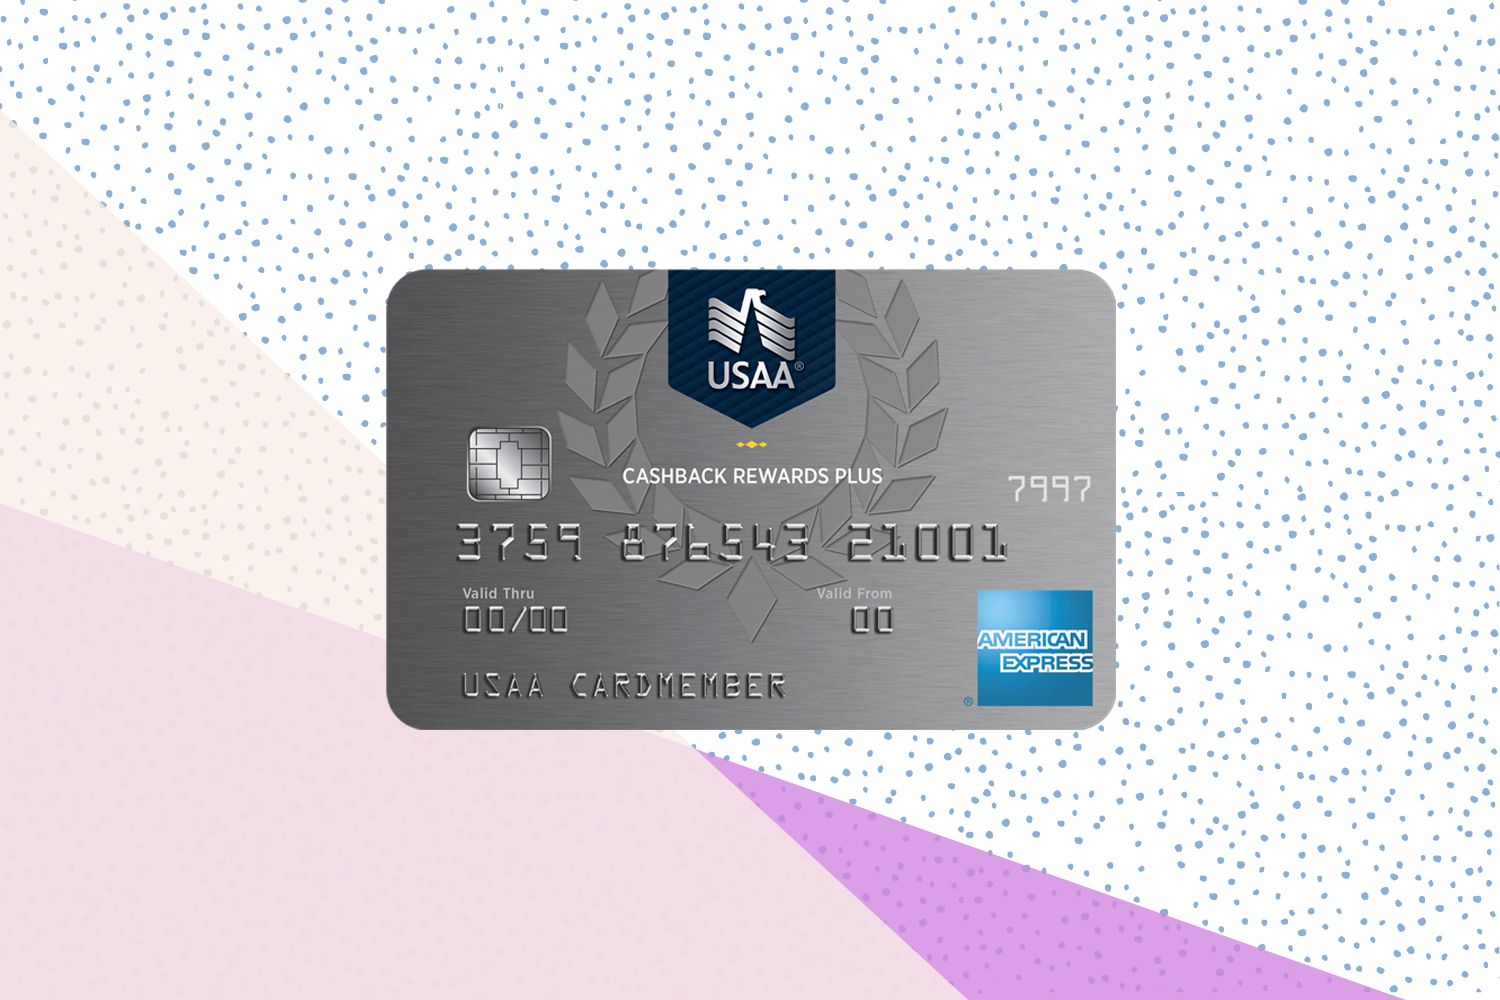 Whether you are looking to apply for a new credit card or are just starting out, there are a few things to know beforehand. Usaa Cashback Rewards Plus American Express Card Review